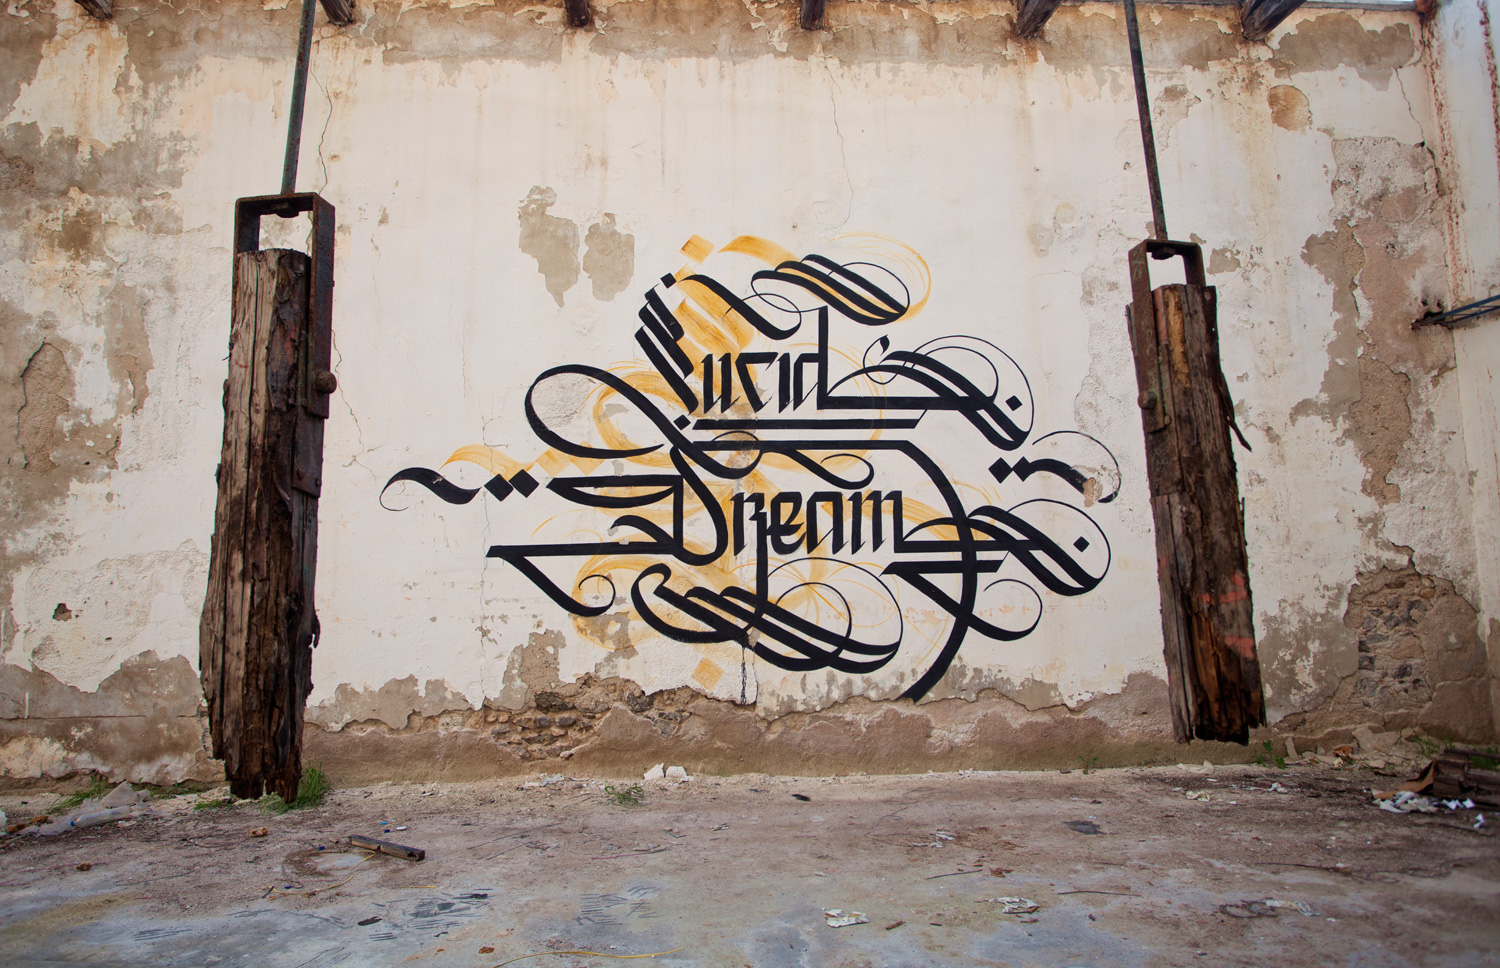 simon-silaidis-lucid-dream-for-urban-calligraphy-05